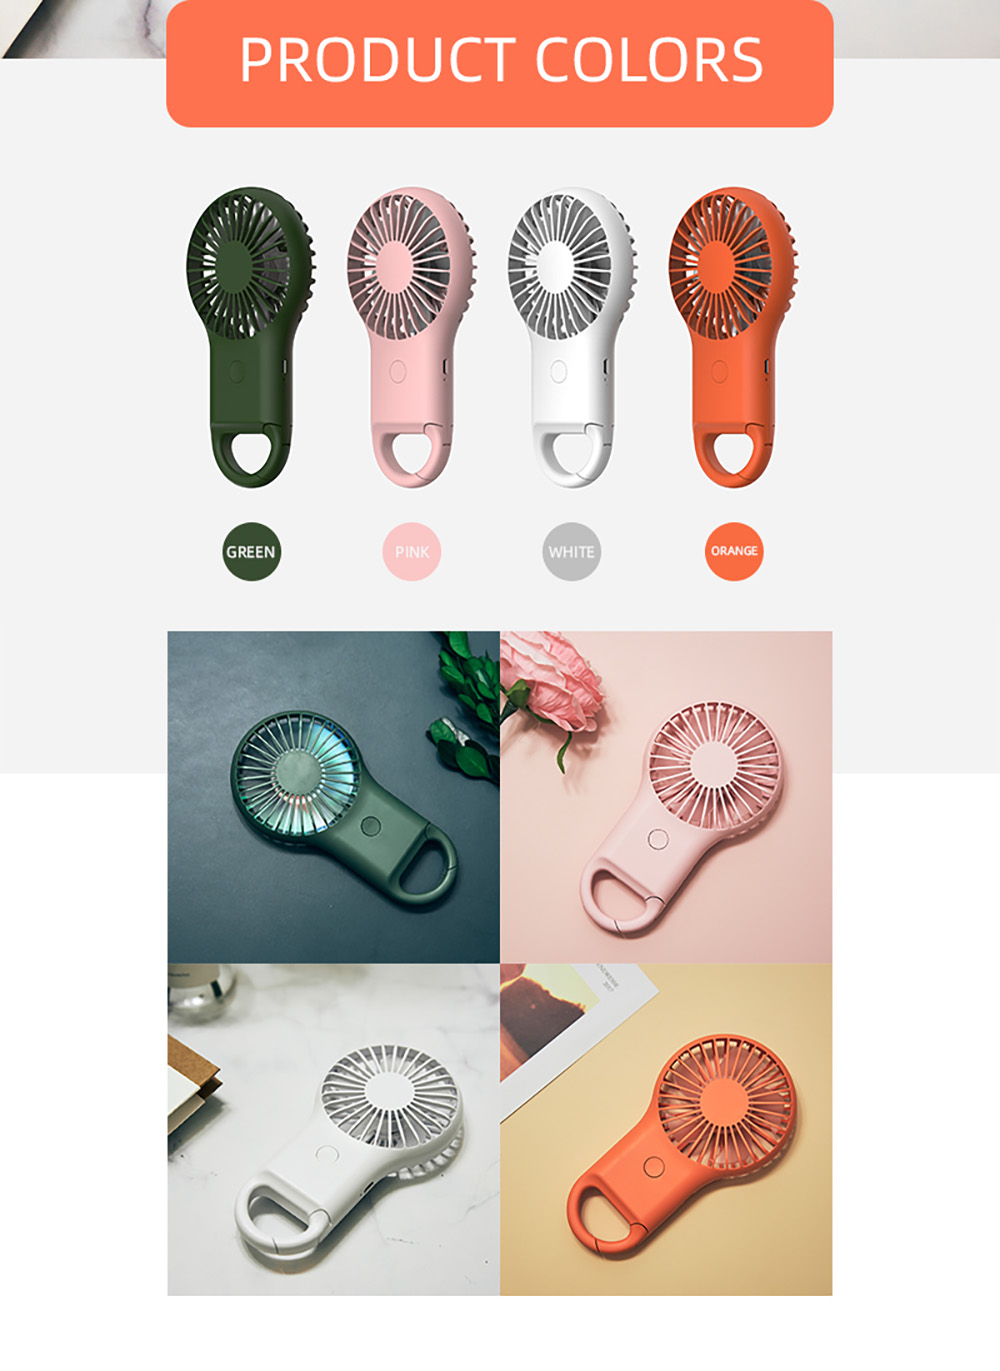 WFY-102 Handheld Mini Electronic Fan with Three Gear Adjustable Strong Wind LED Night Light Carabiner - Dark Forest Green